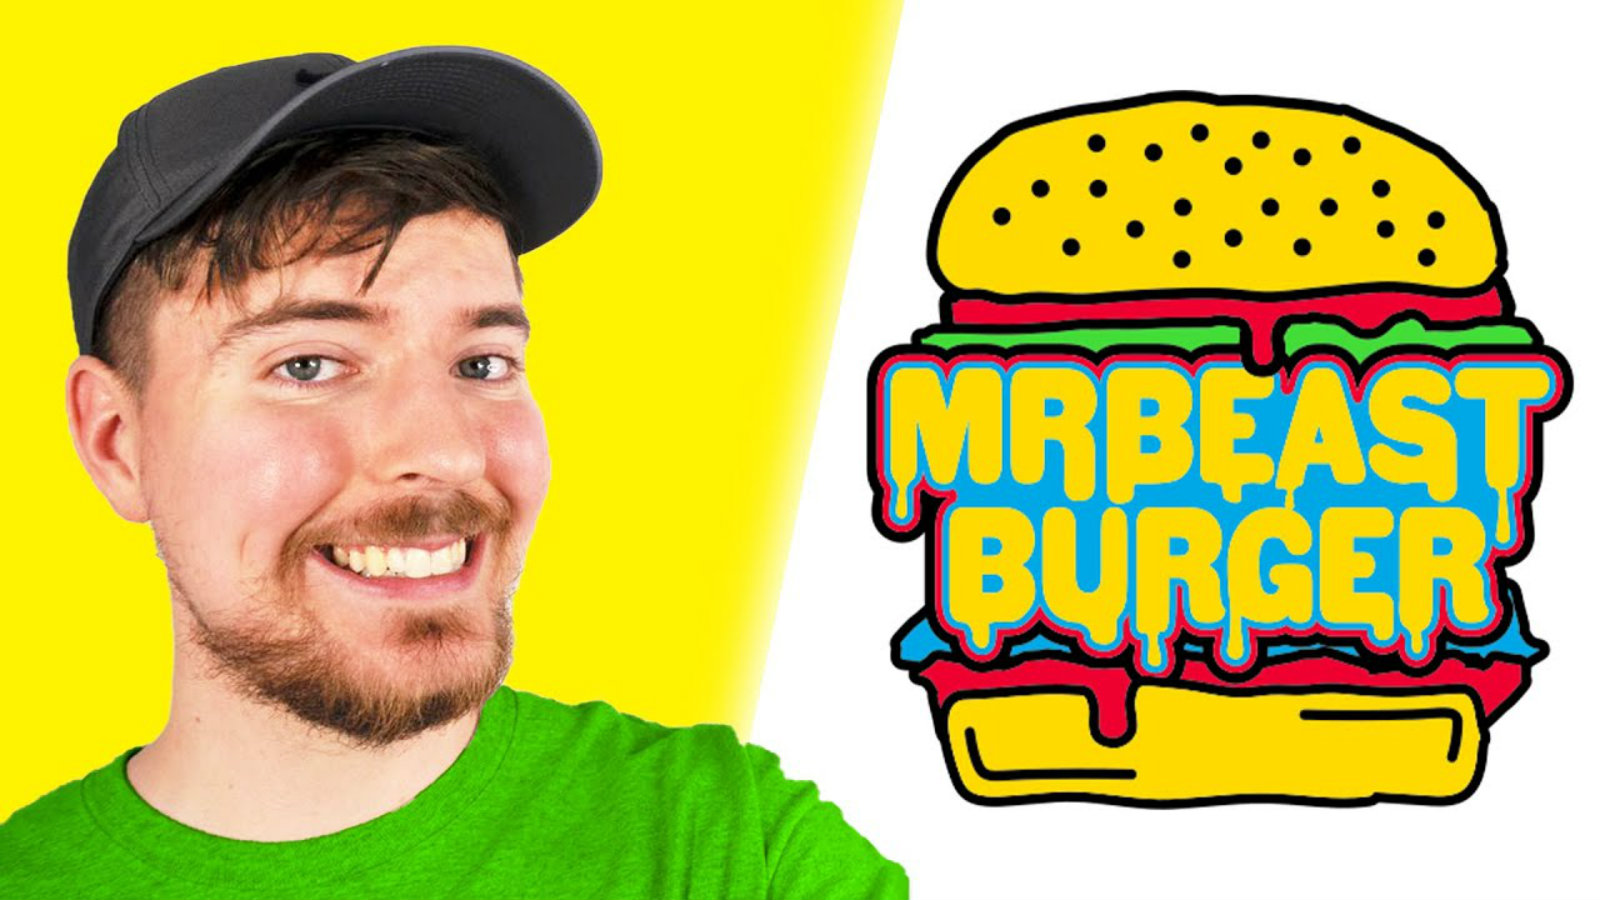 Mr Beast Burger logo